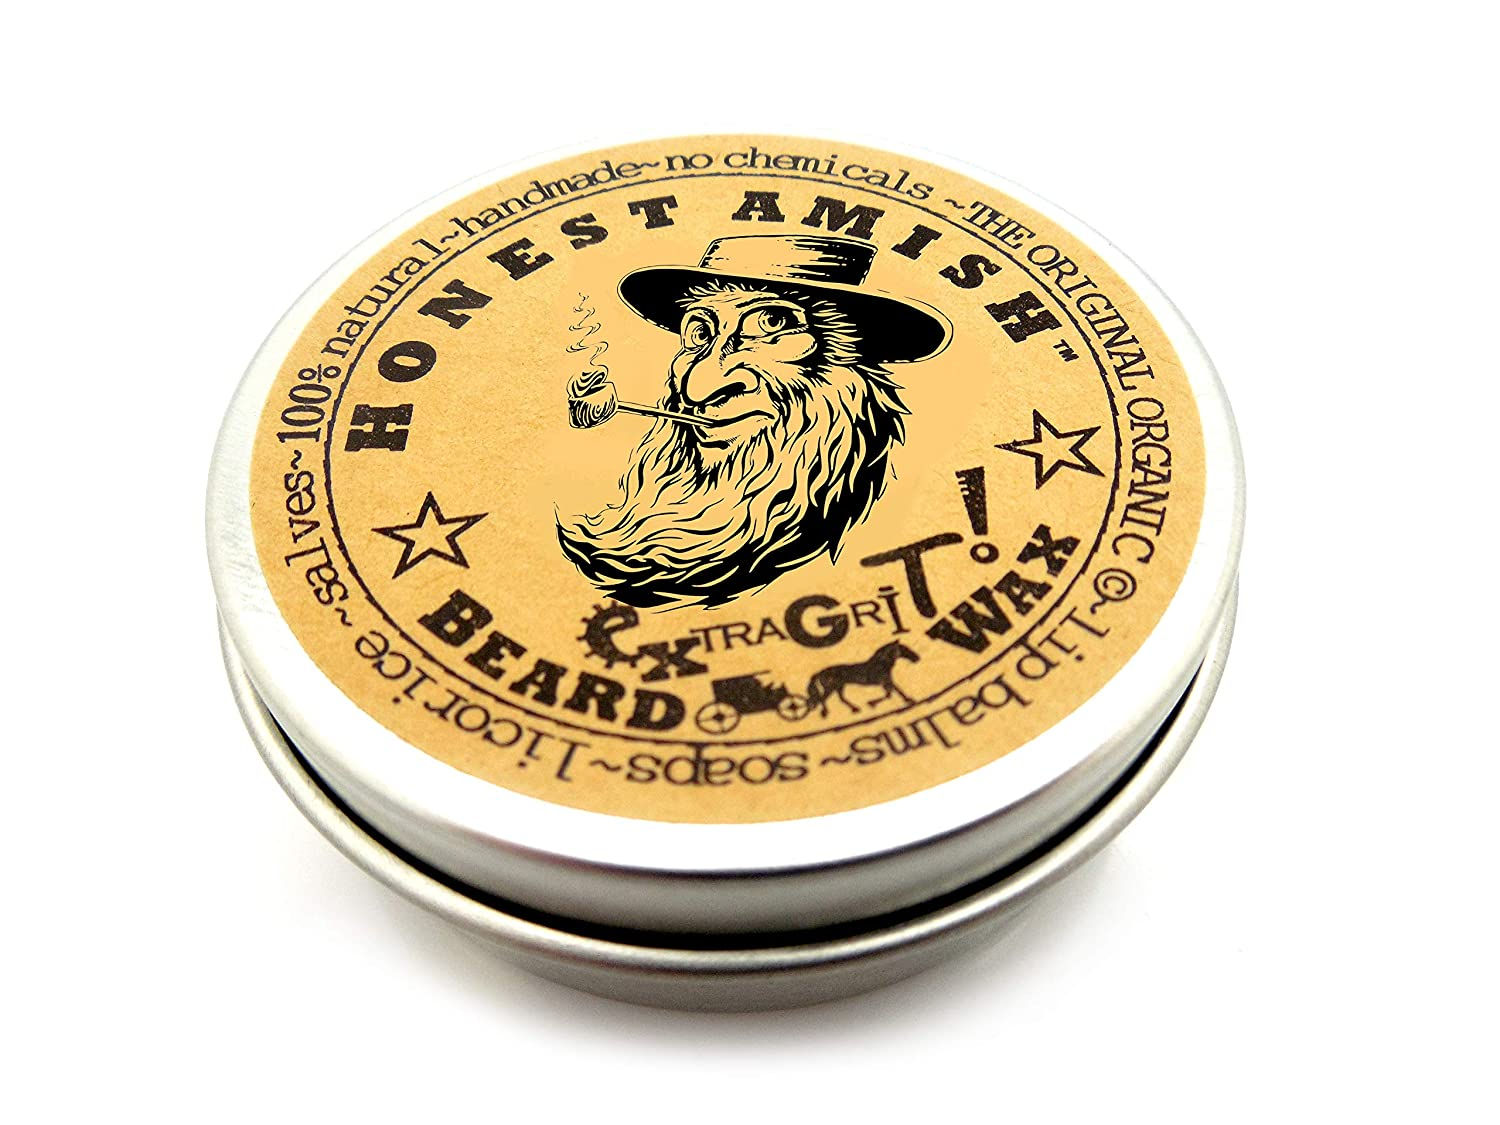 Honest Amish Extra Grit Beard Wax - Natural and Organic - Hair Paste and Hair Control Wax Beard Wax Extra Grit